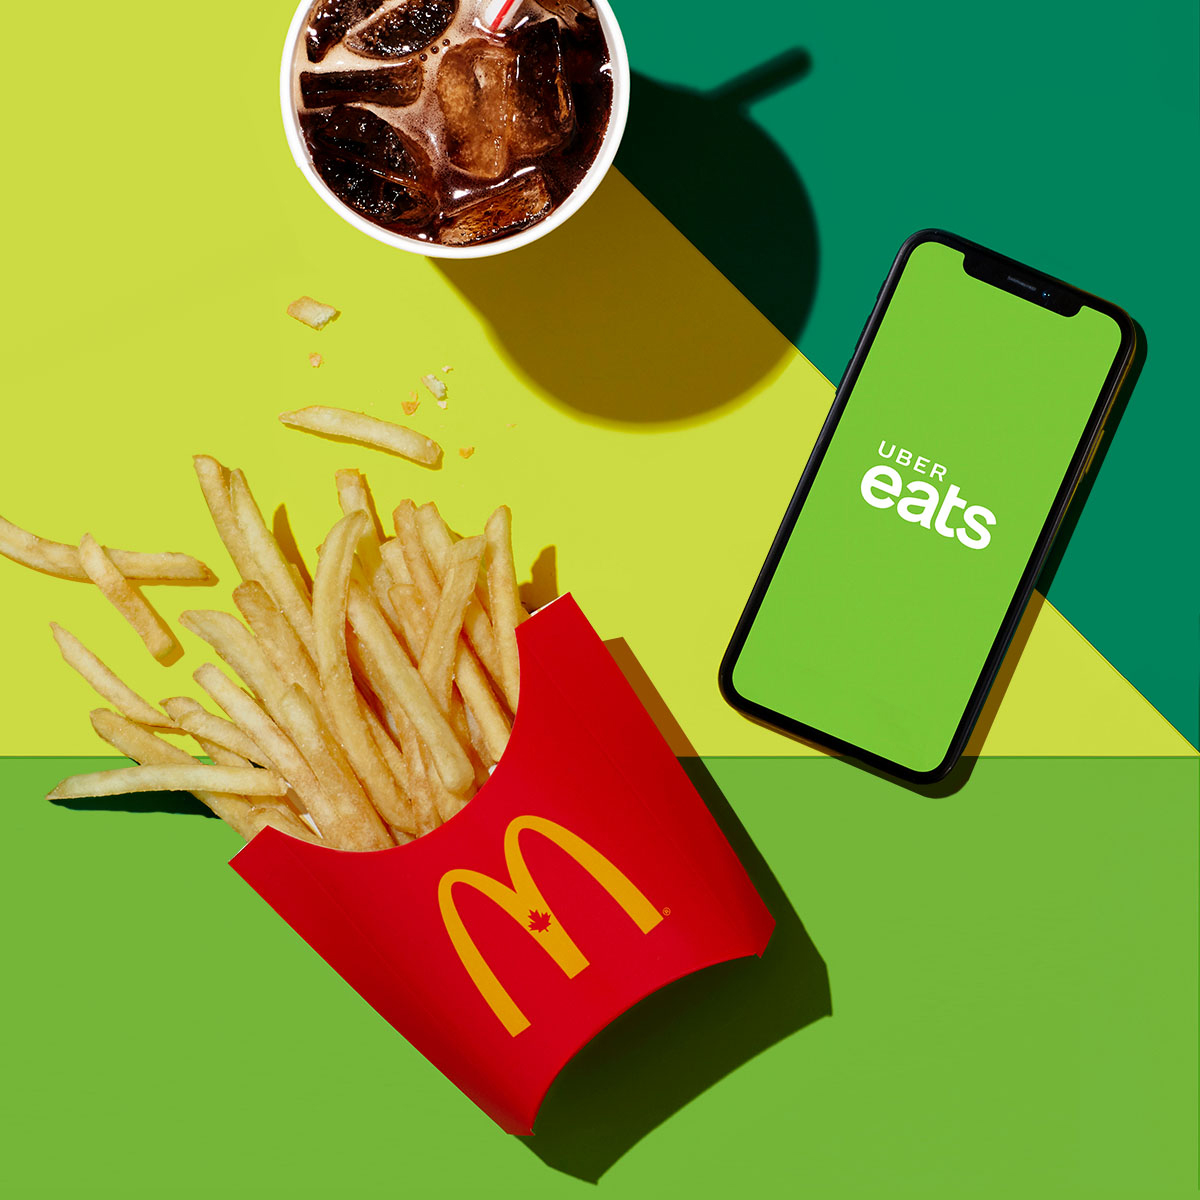 2018_02_ubereats_mcdonalds_fries2.jpg